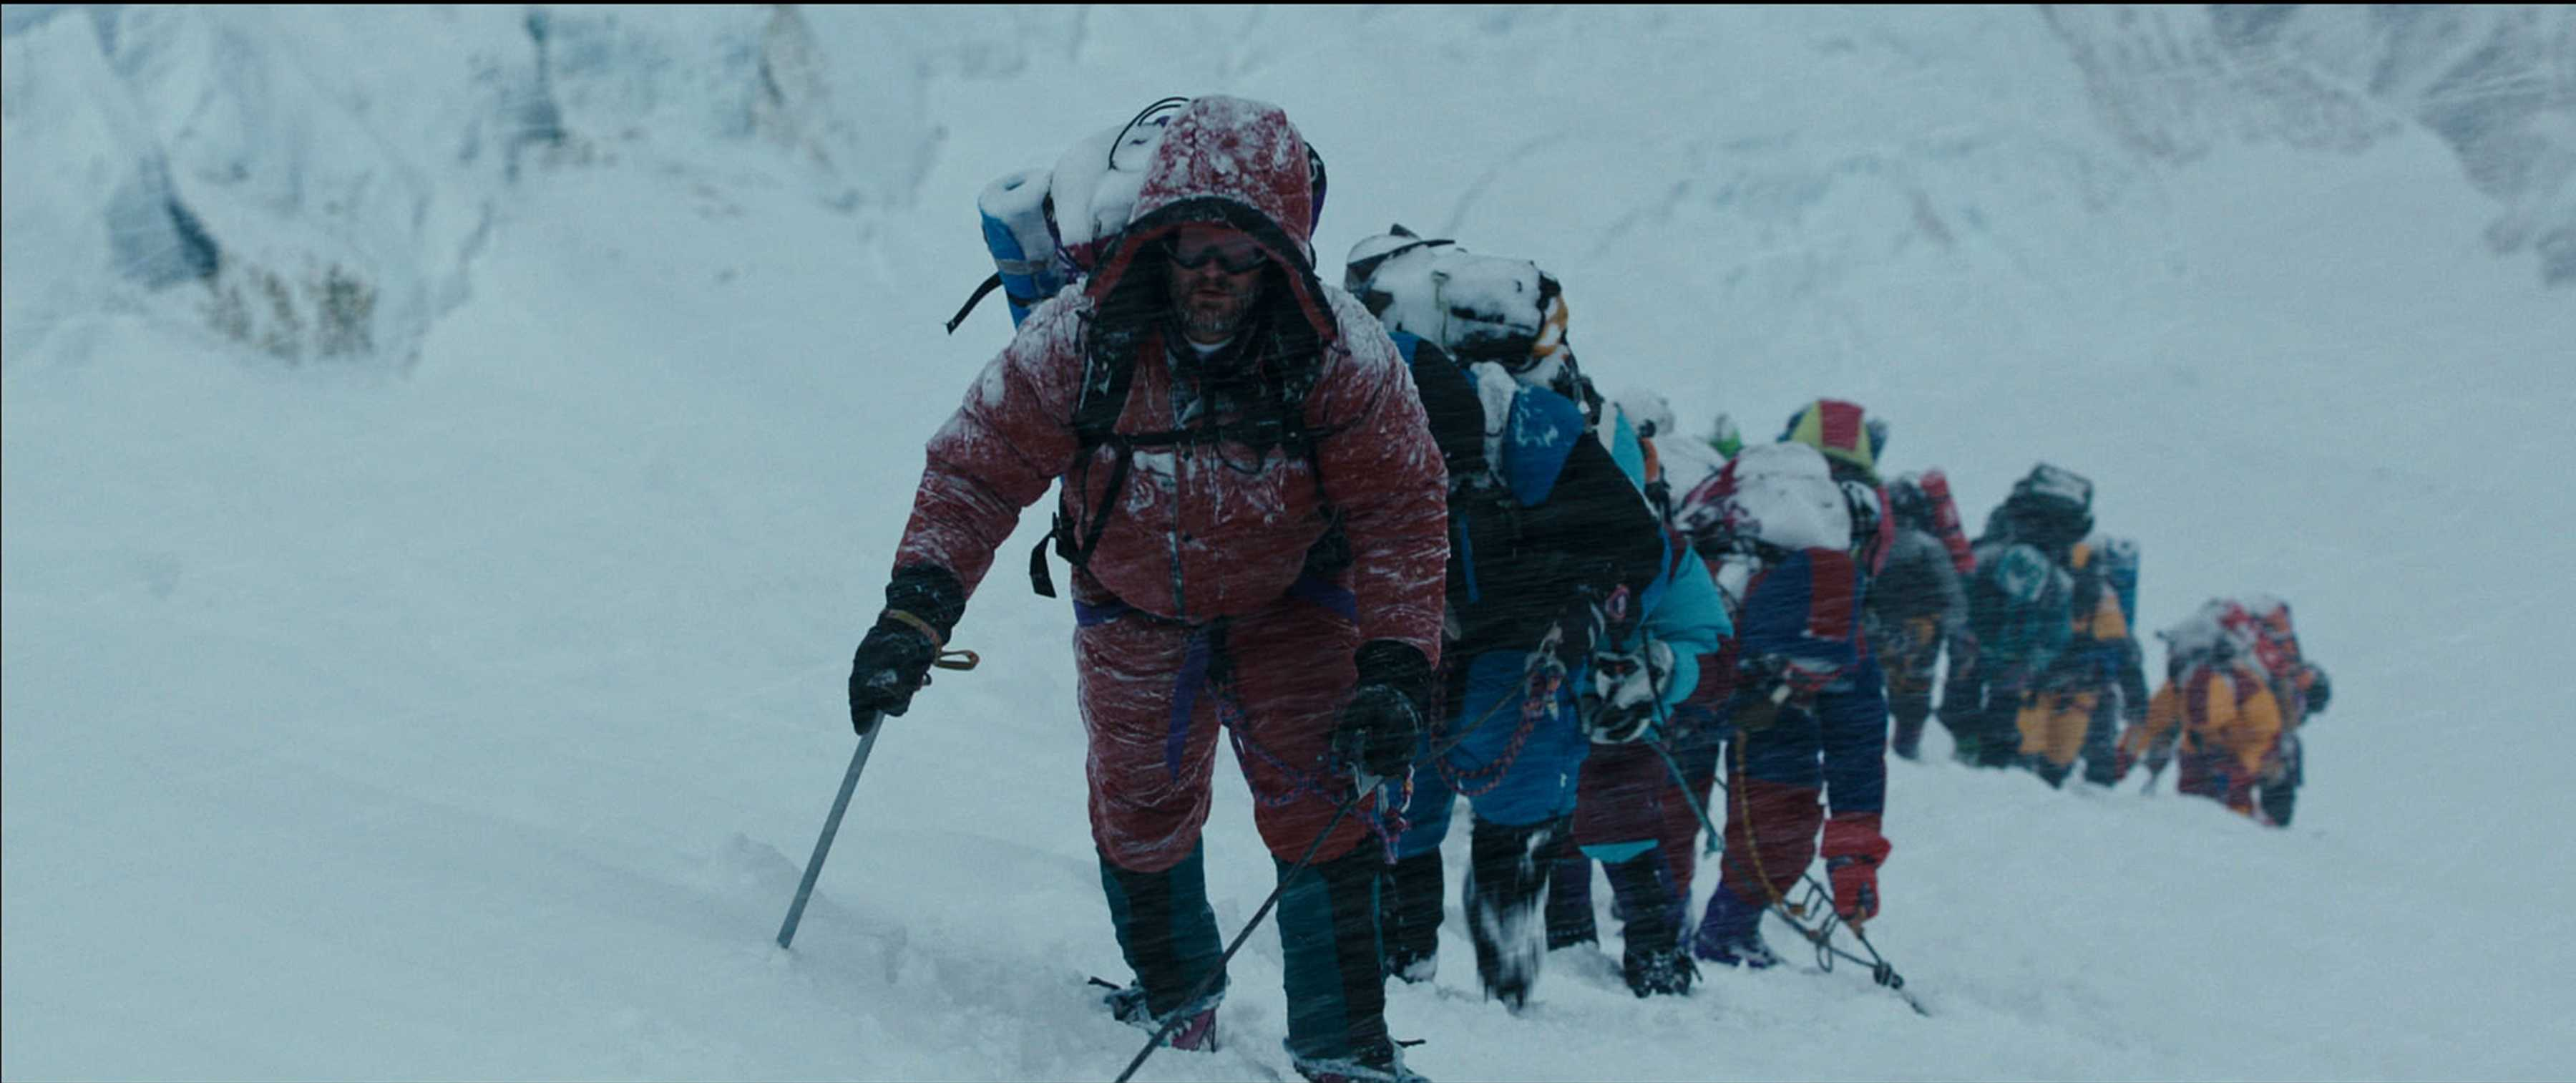 'Everest' sits at the apex of tragedy-based features